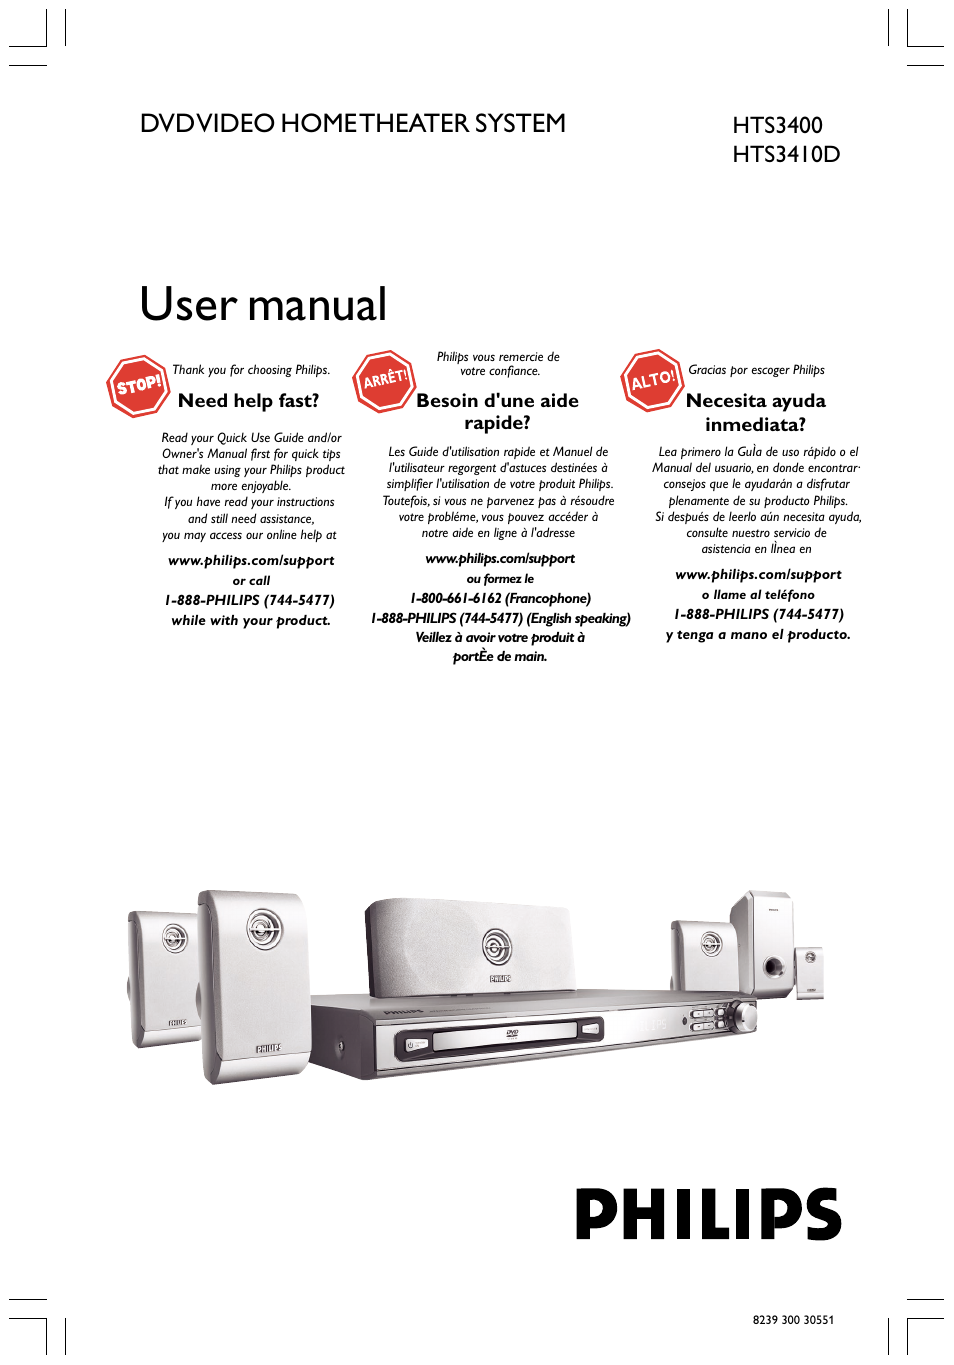 philips hts3400 user manual 40 pages also for hts3410d 37b dvd rh manualsdir com Philips User Guides Philips User Guides Speaker Bt7900